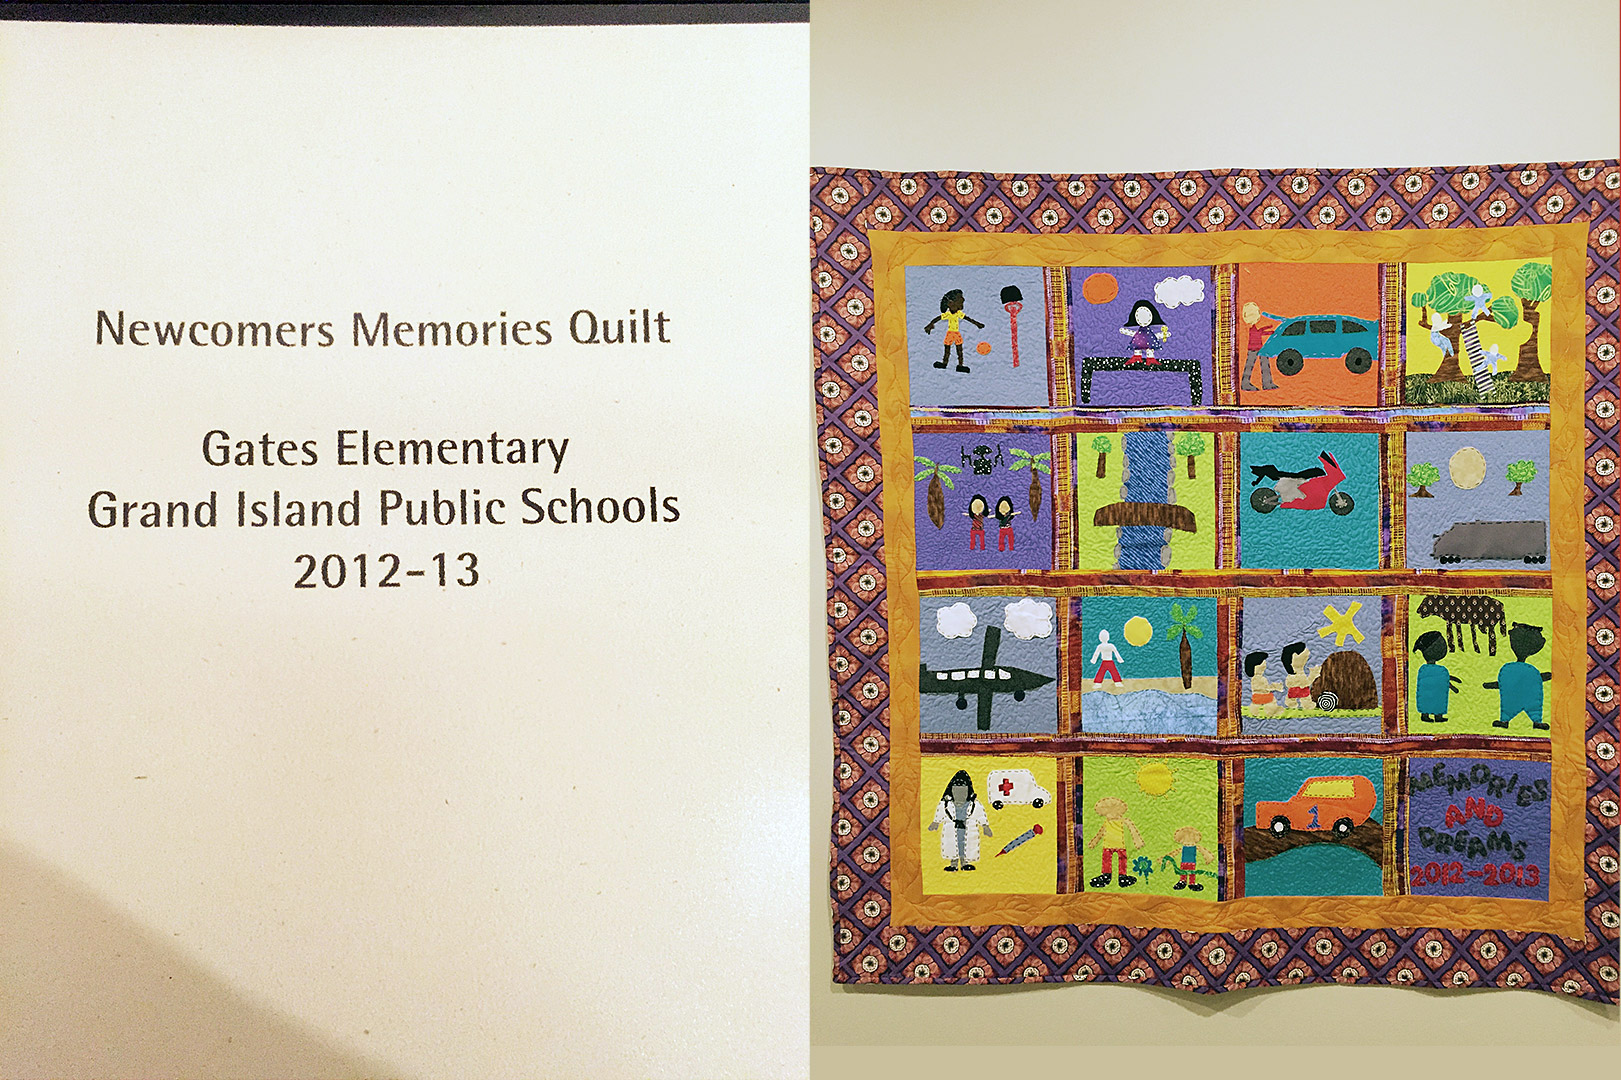 2012-2013 Newcomers Quilt. Courtesy Tracy Morrow